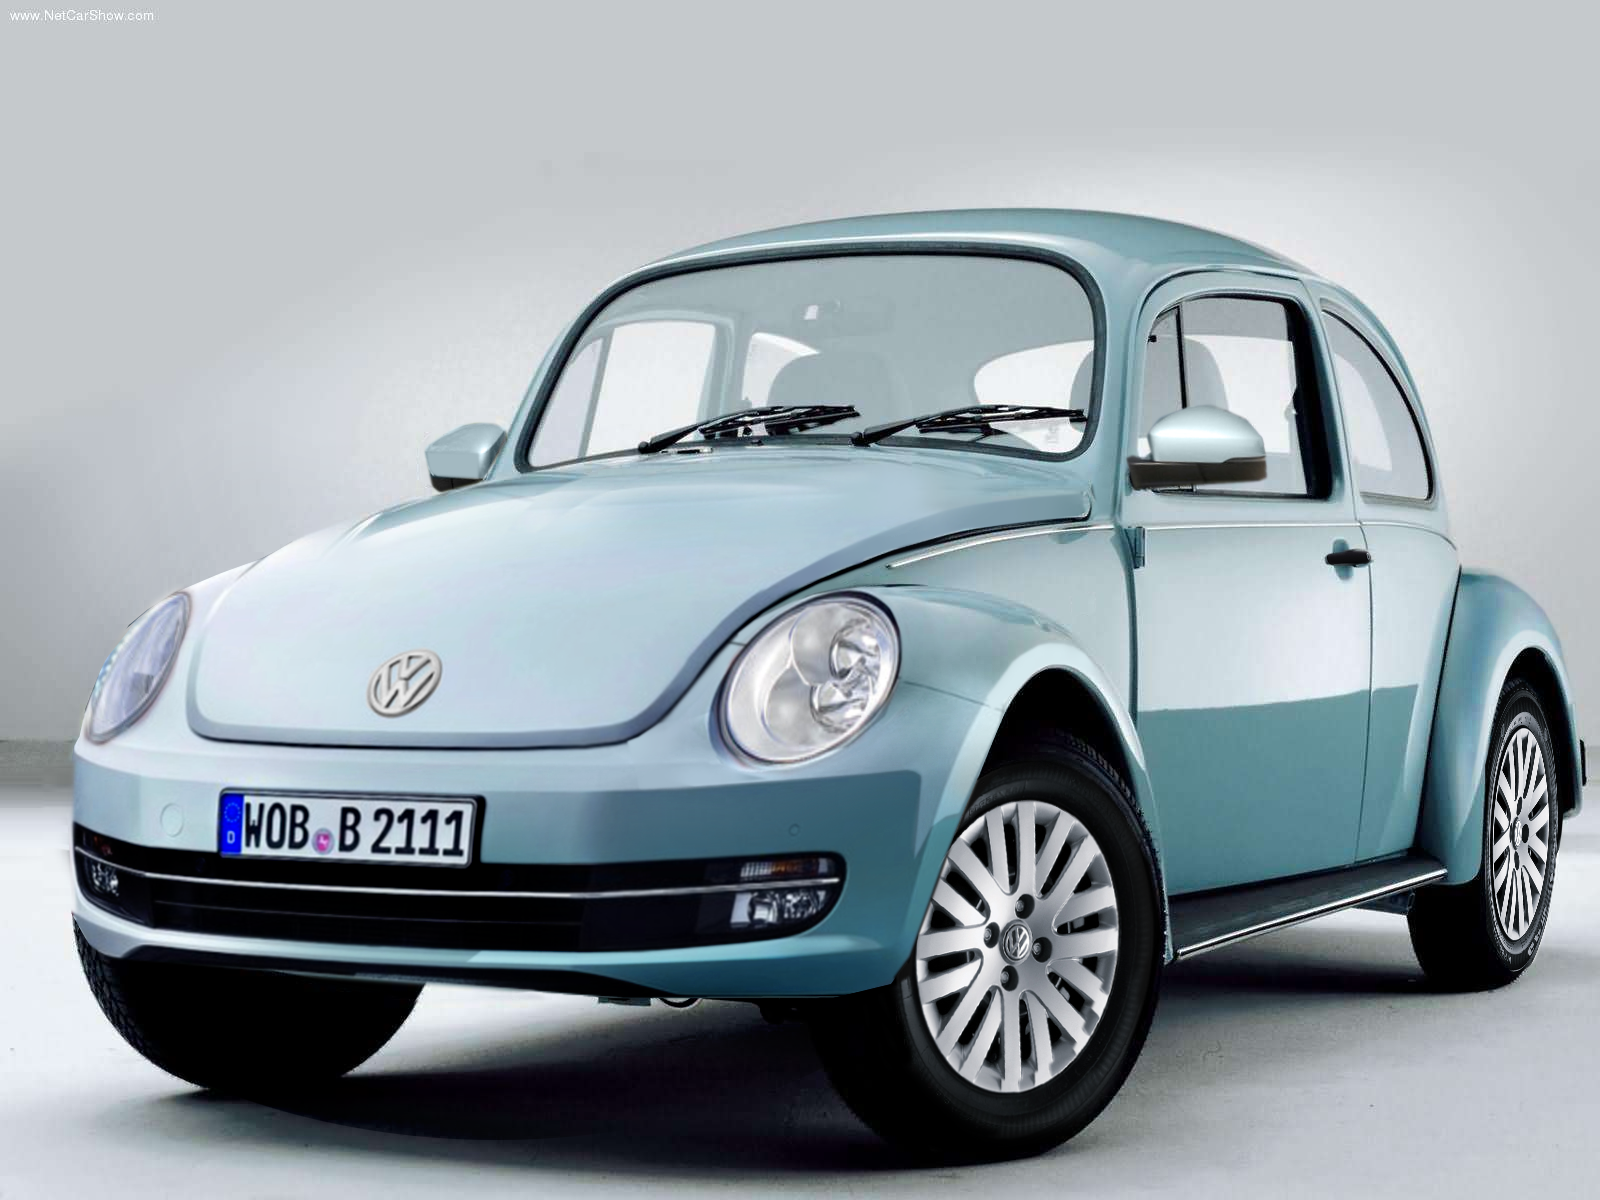 Download image Vw Fusca PC, Android, iPhone and iPad. Wallpapers and